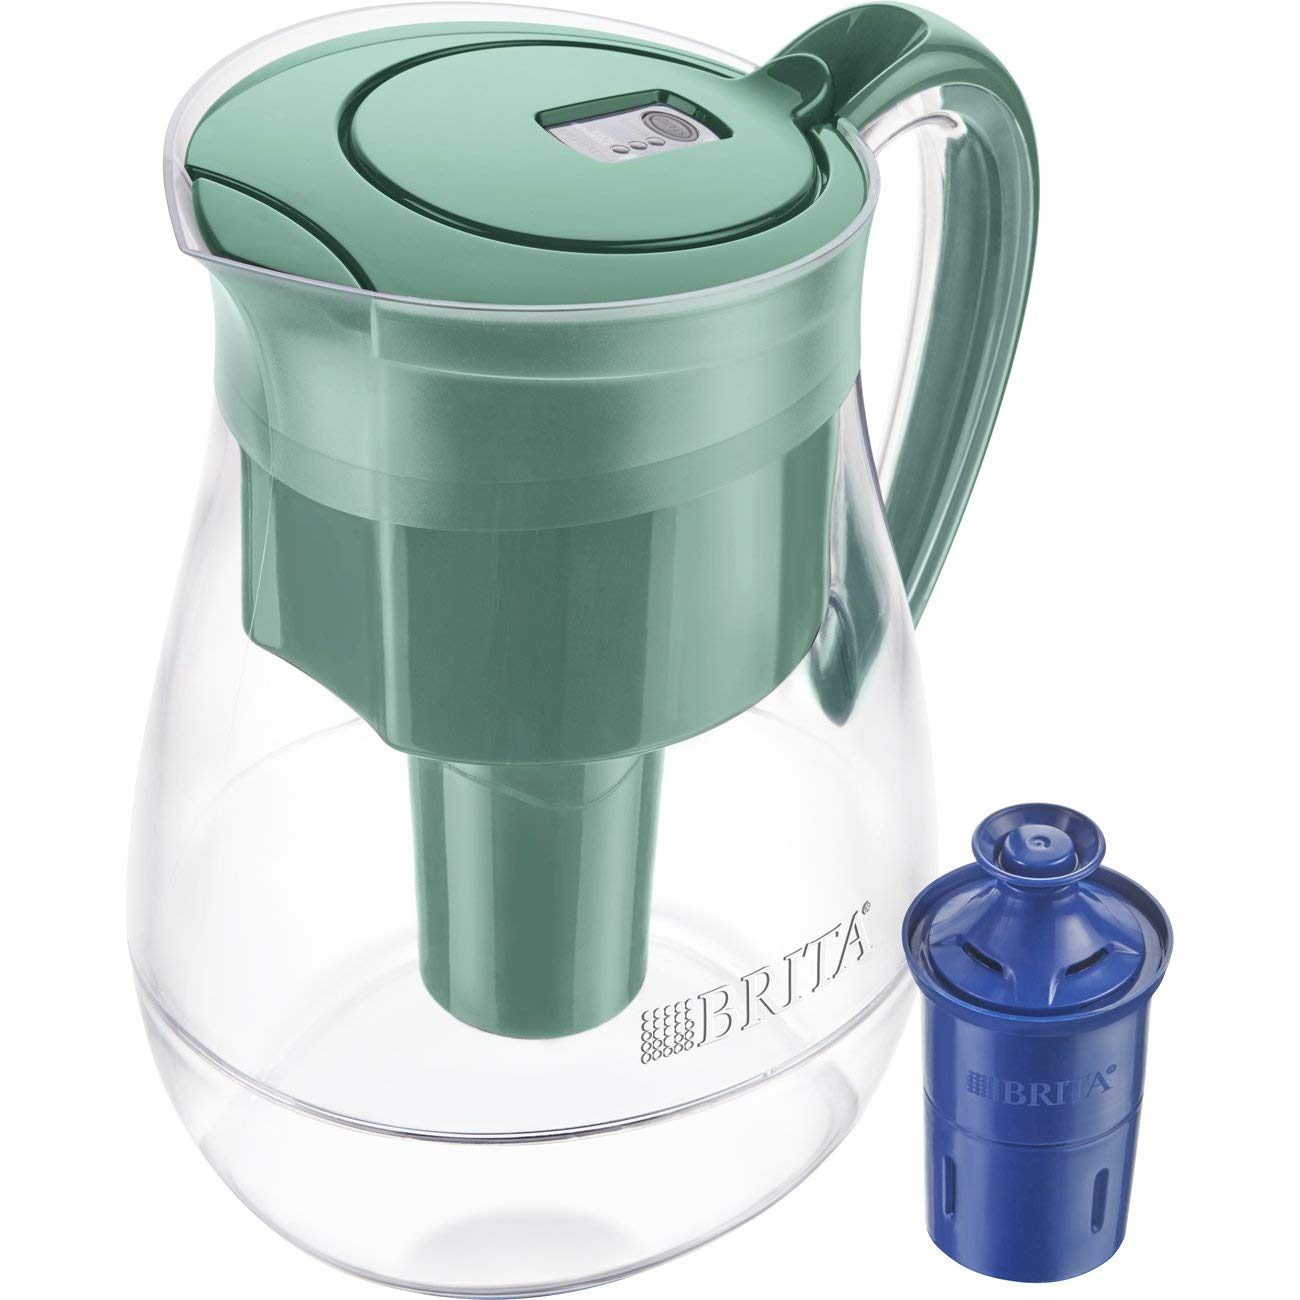 Brita Large 10 Cup Water Filter Pitcher with 1 Longlast Filter, Reduces Lead, BPA Free - Monterey, Green